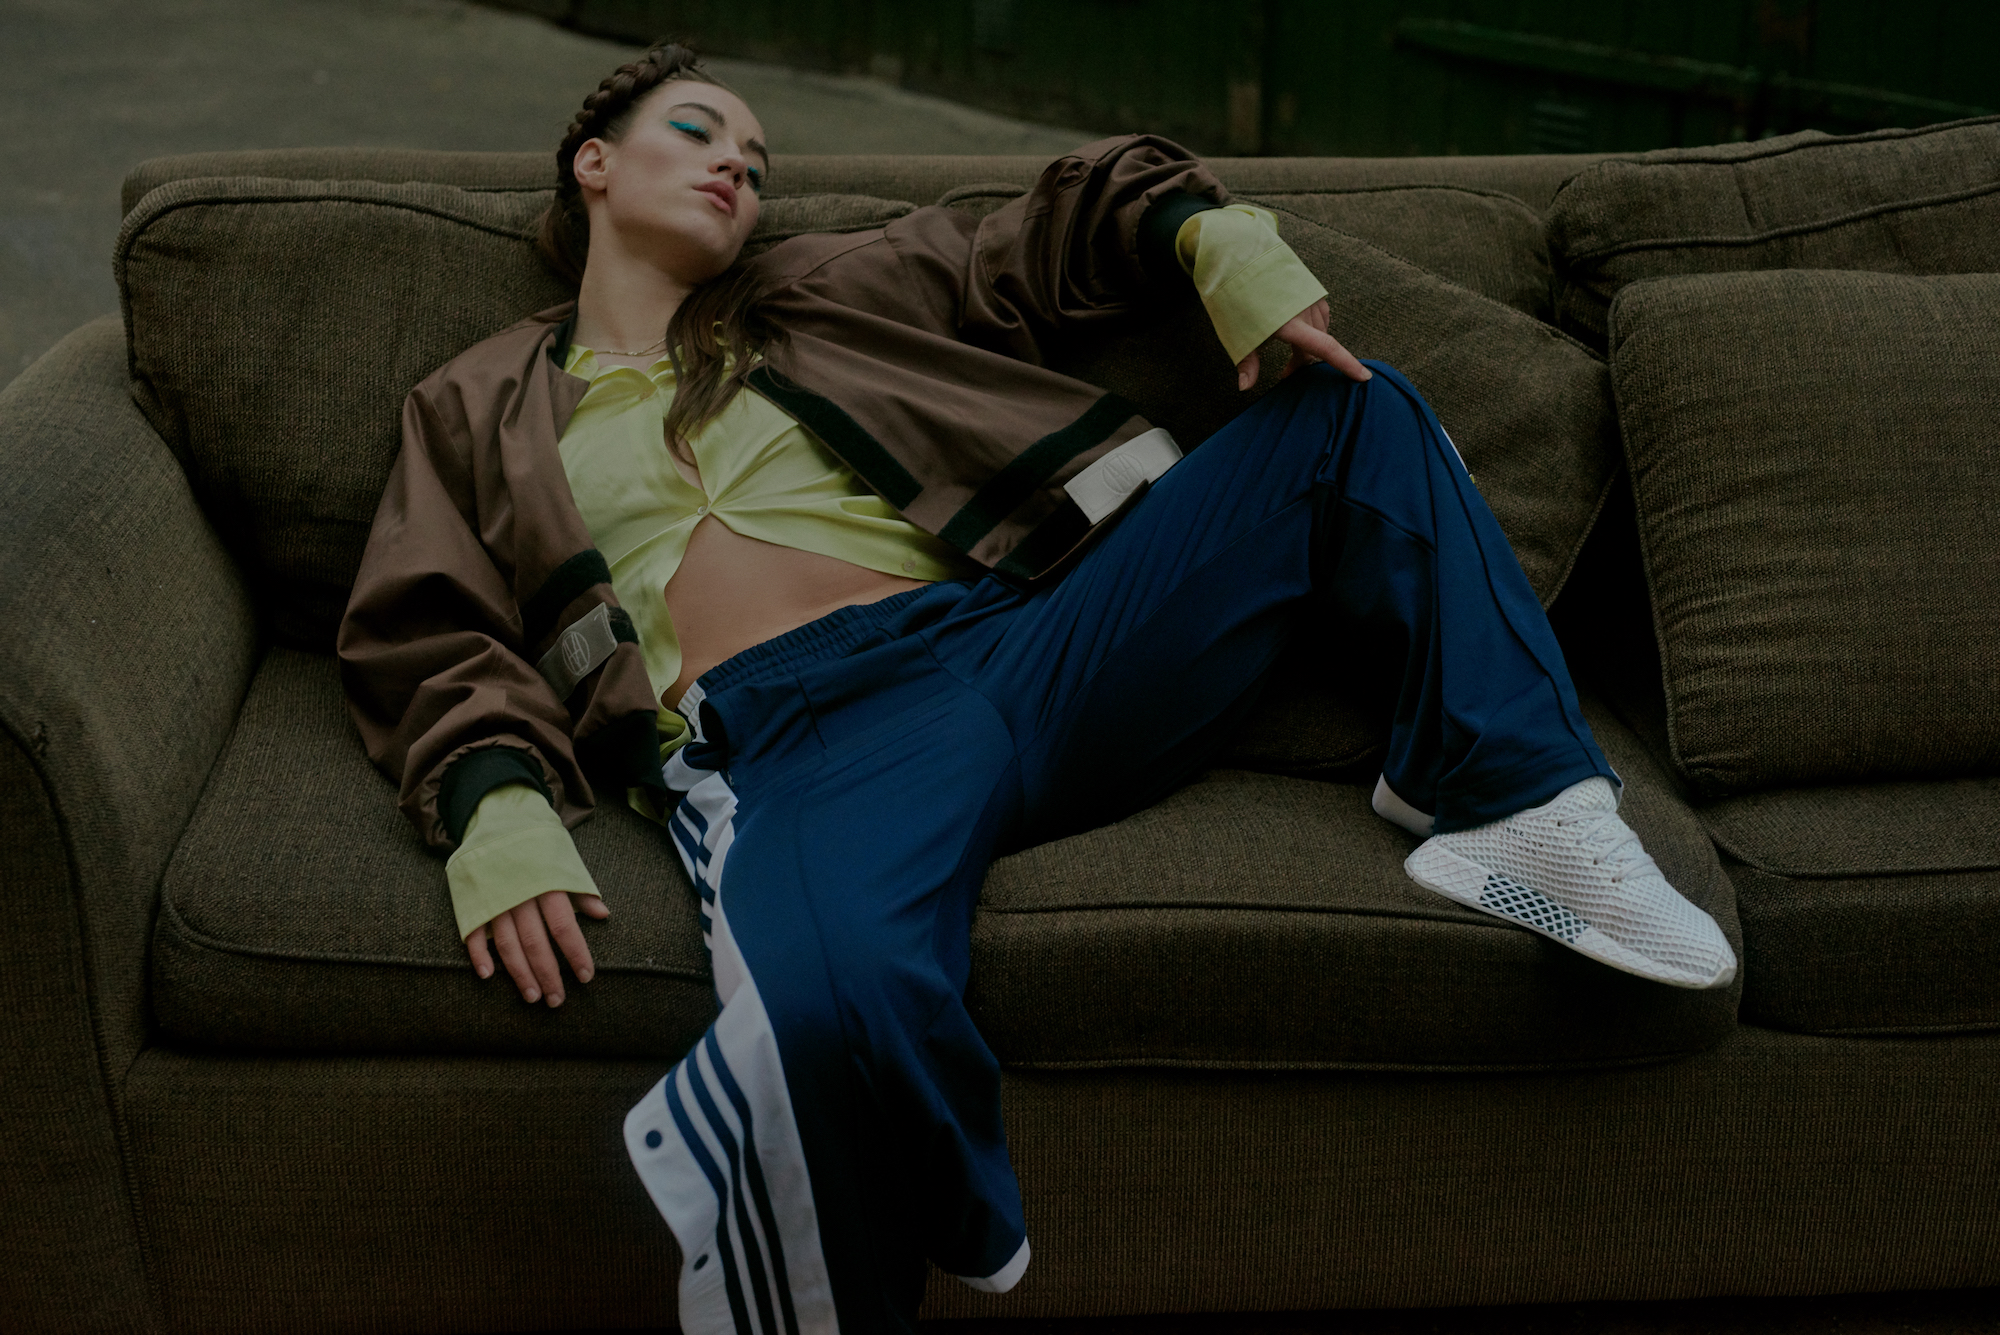 Adidas Originals x Girls are Awesome starring Classical